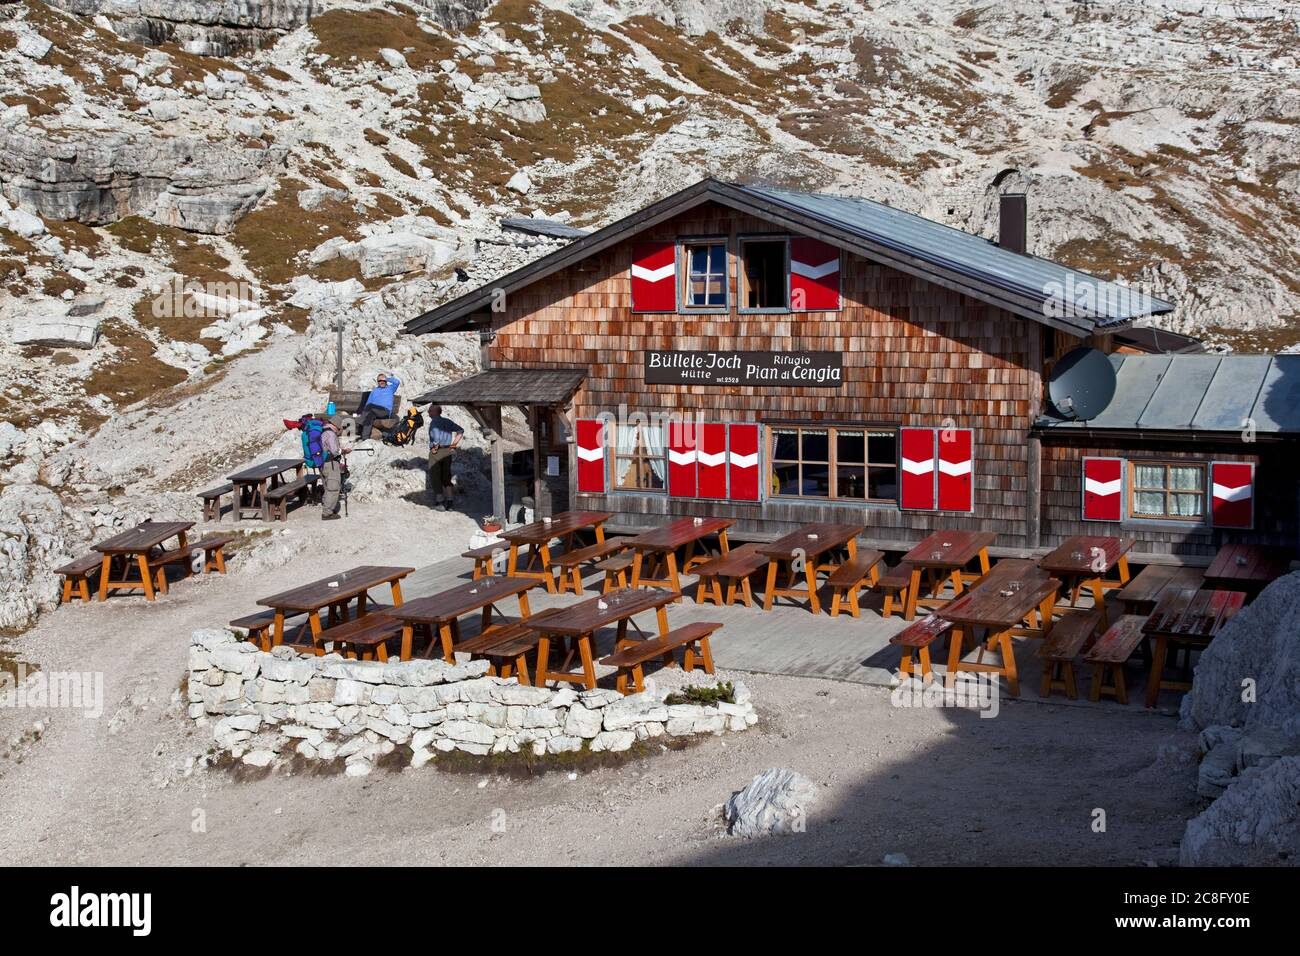 geography / travel, Italy, South Tyrol, bothy at Buellele-Joch in the Sexten Dolomites, Additional-Rights-Clearance-Info-Not-Available Stock Photo